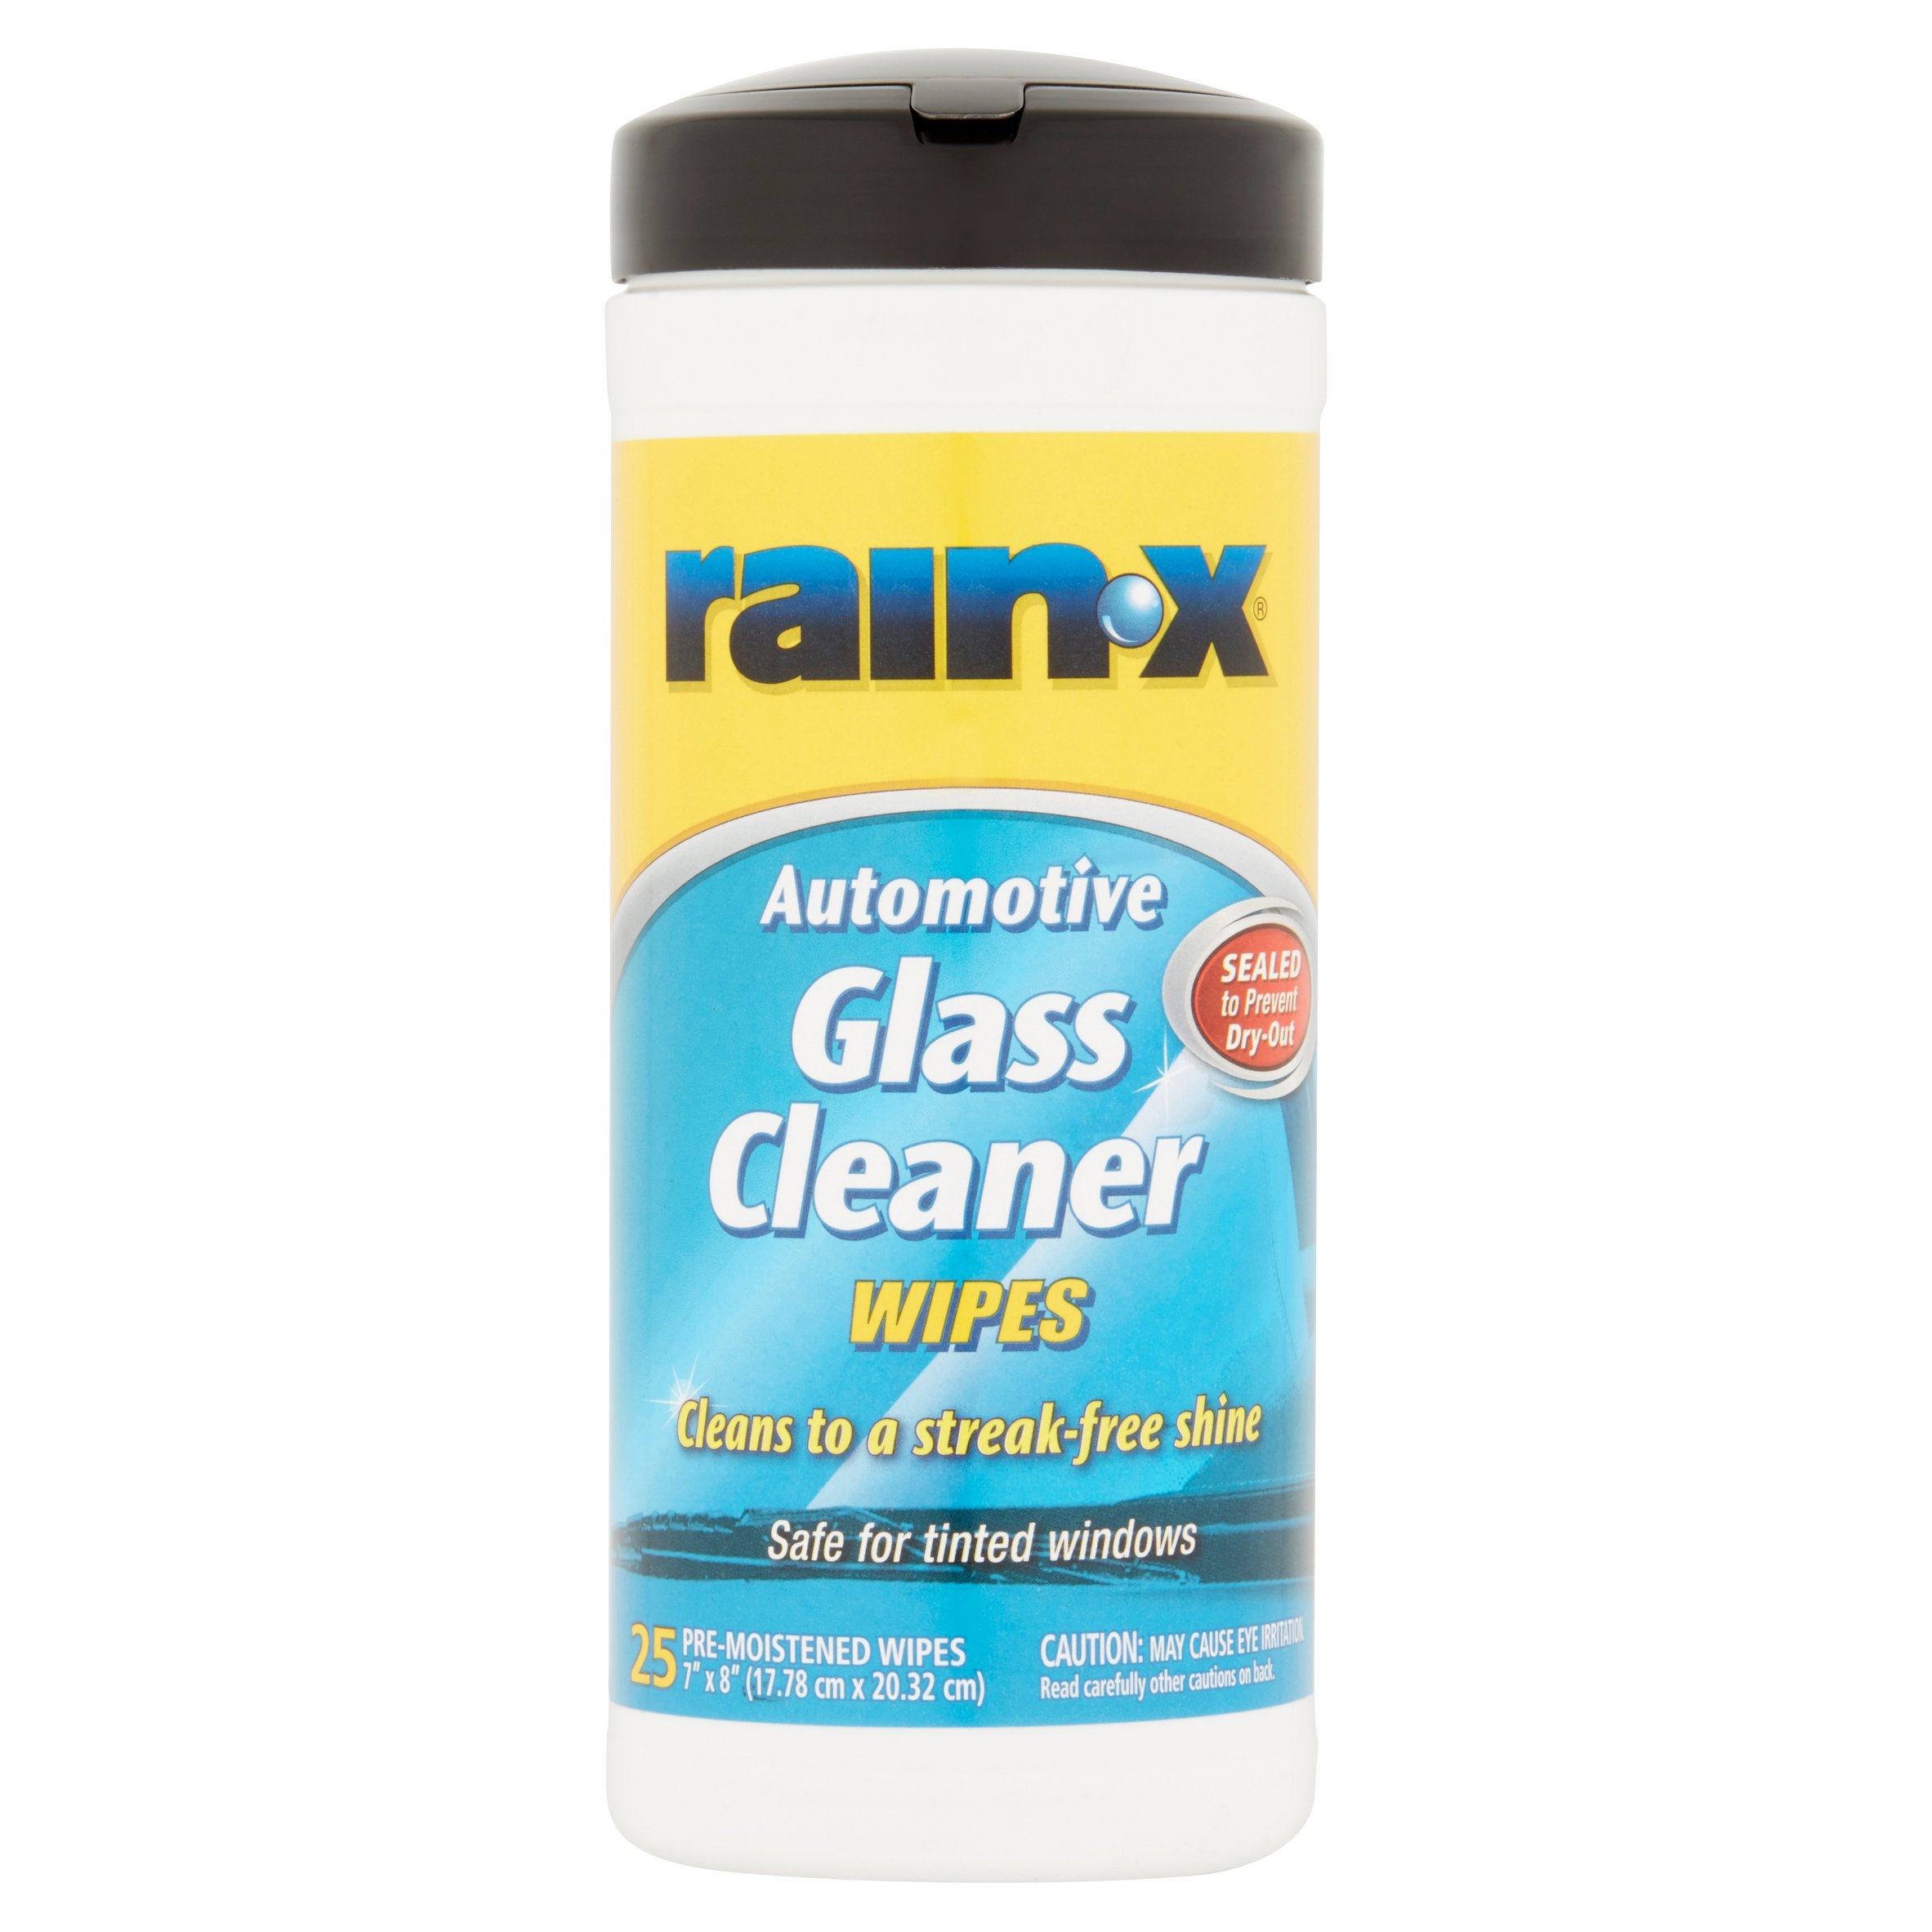 RainX Automotive Glass Cleaner Pre-Moistened Wipes, 25 count